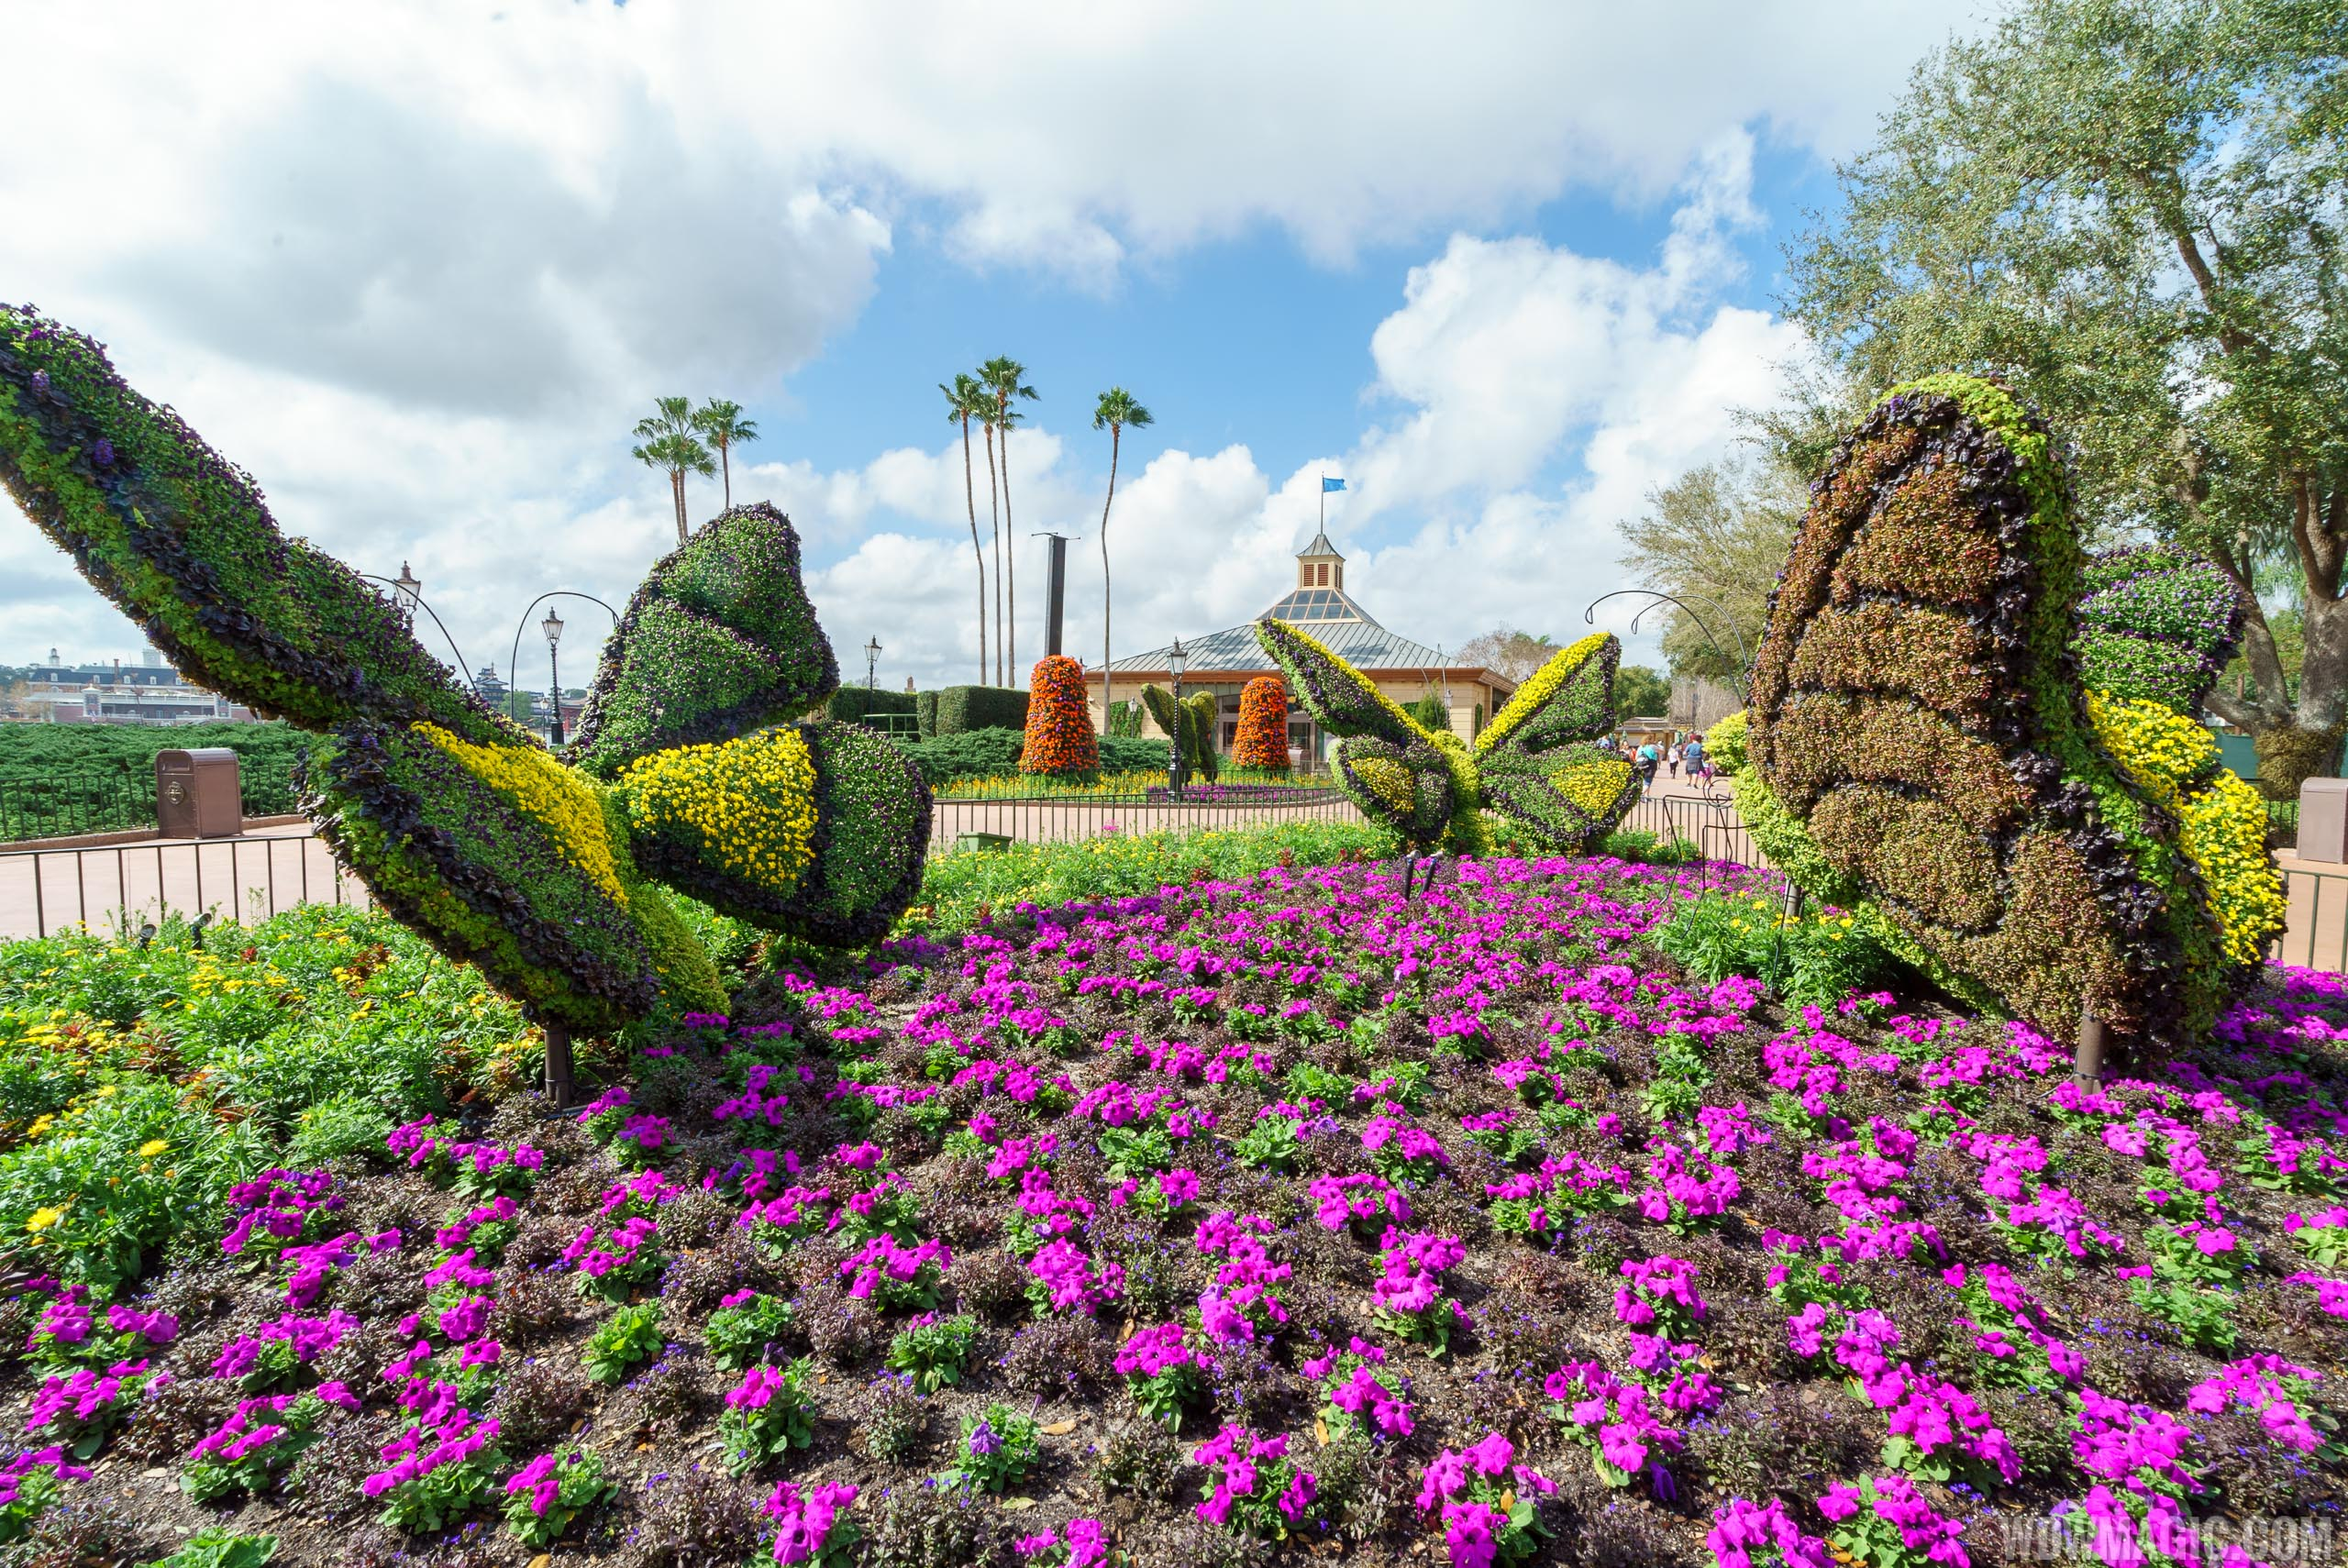 2017 Flower and Garden Festival - Butterflies topiaries in Showcase Plaza